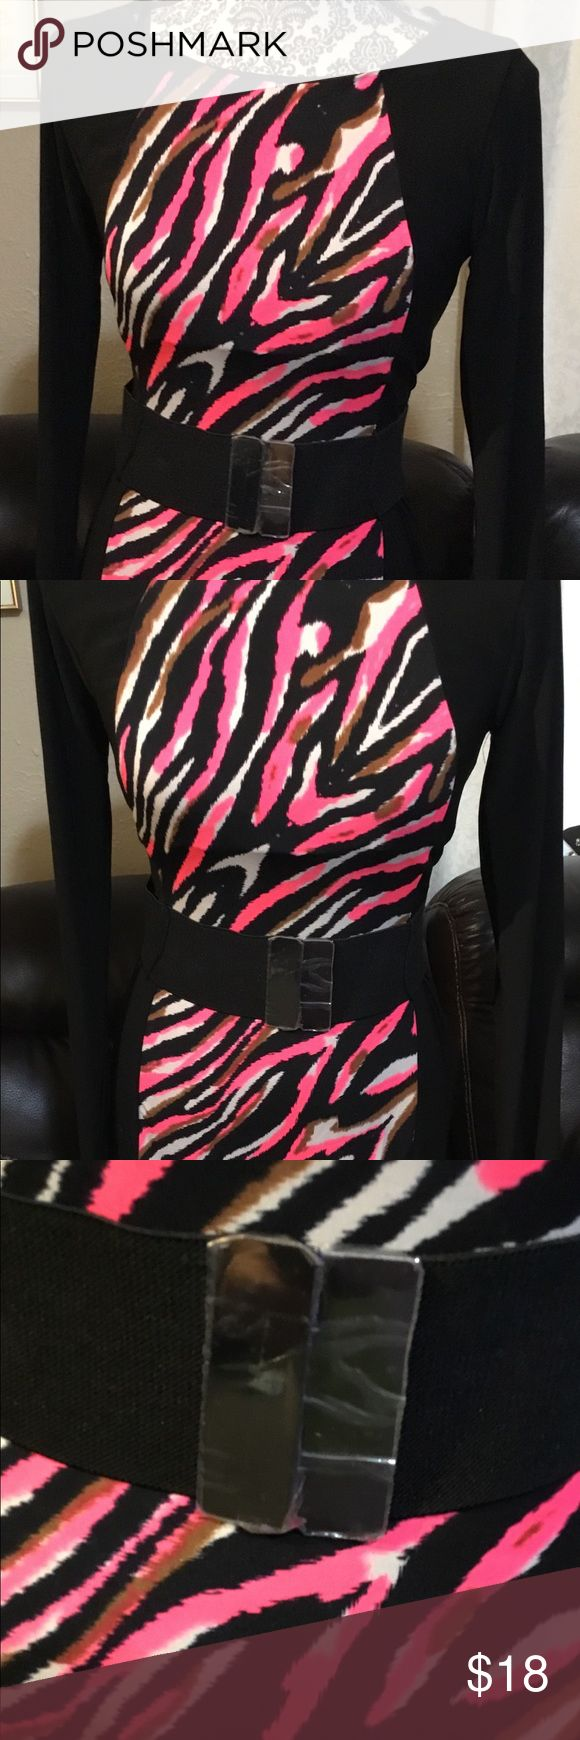 """New B. Smart fun bodycon dress. Stretchy sz 4 New B. Smart fun bodycon dress. Stretchy sz 4.  All over stretch, back zip closure.  Neon animal print with black sides.  Stretch wide belt still has plastic on clip.  New never worn no tags.  Armpit-armpit:  17"""".  Sleeve:  24"""". Overall length:  36"""". B. Smart Dresses"""